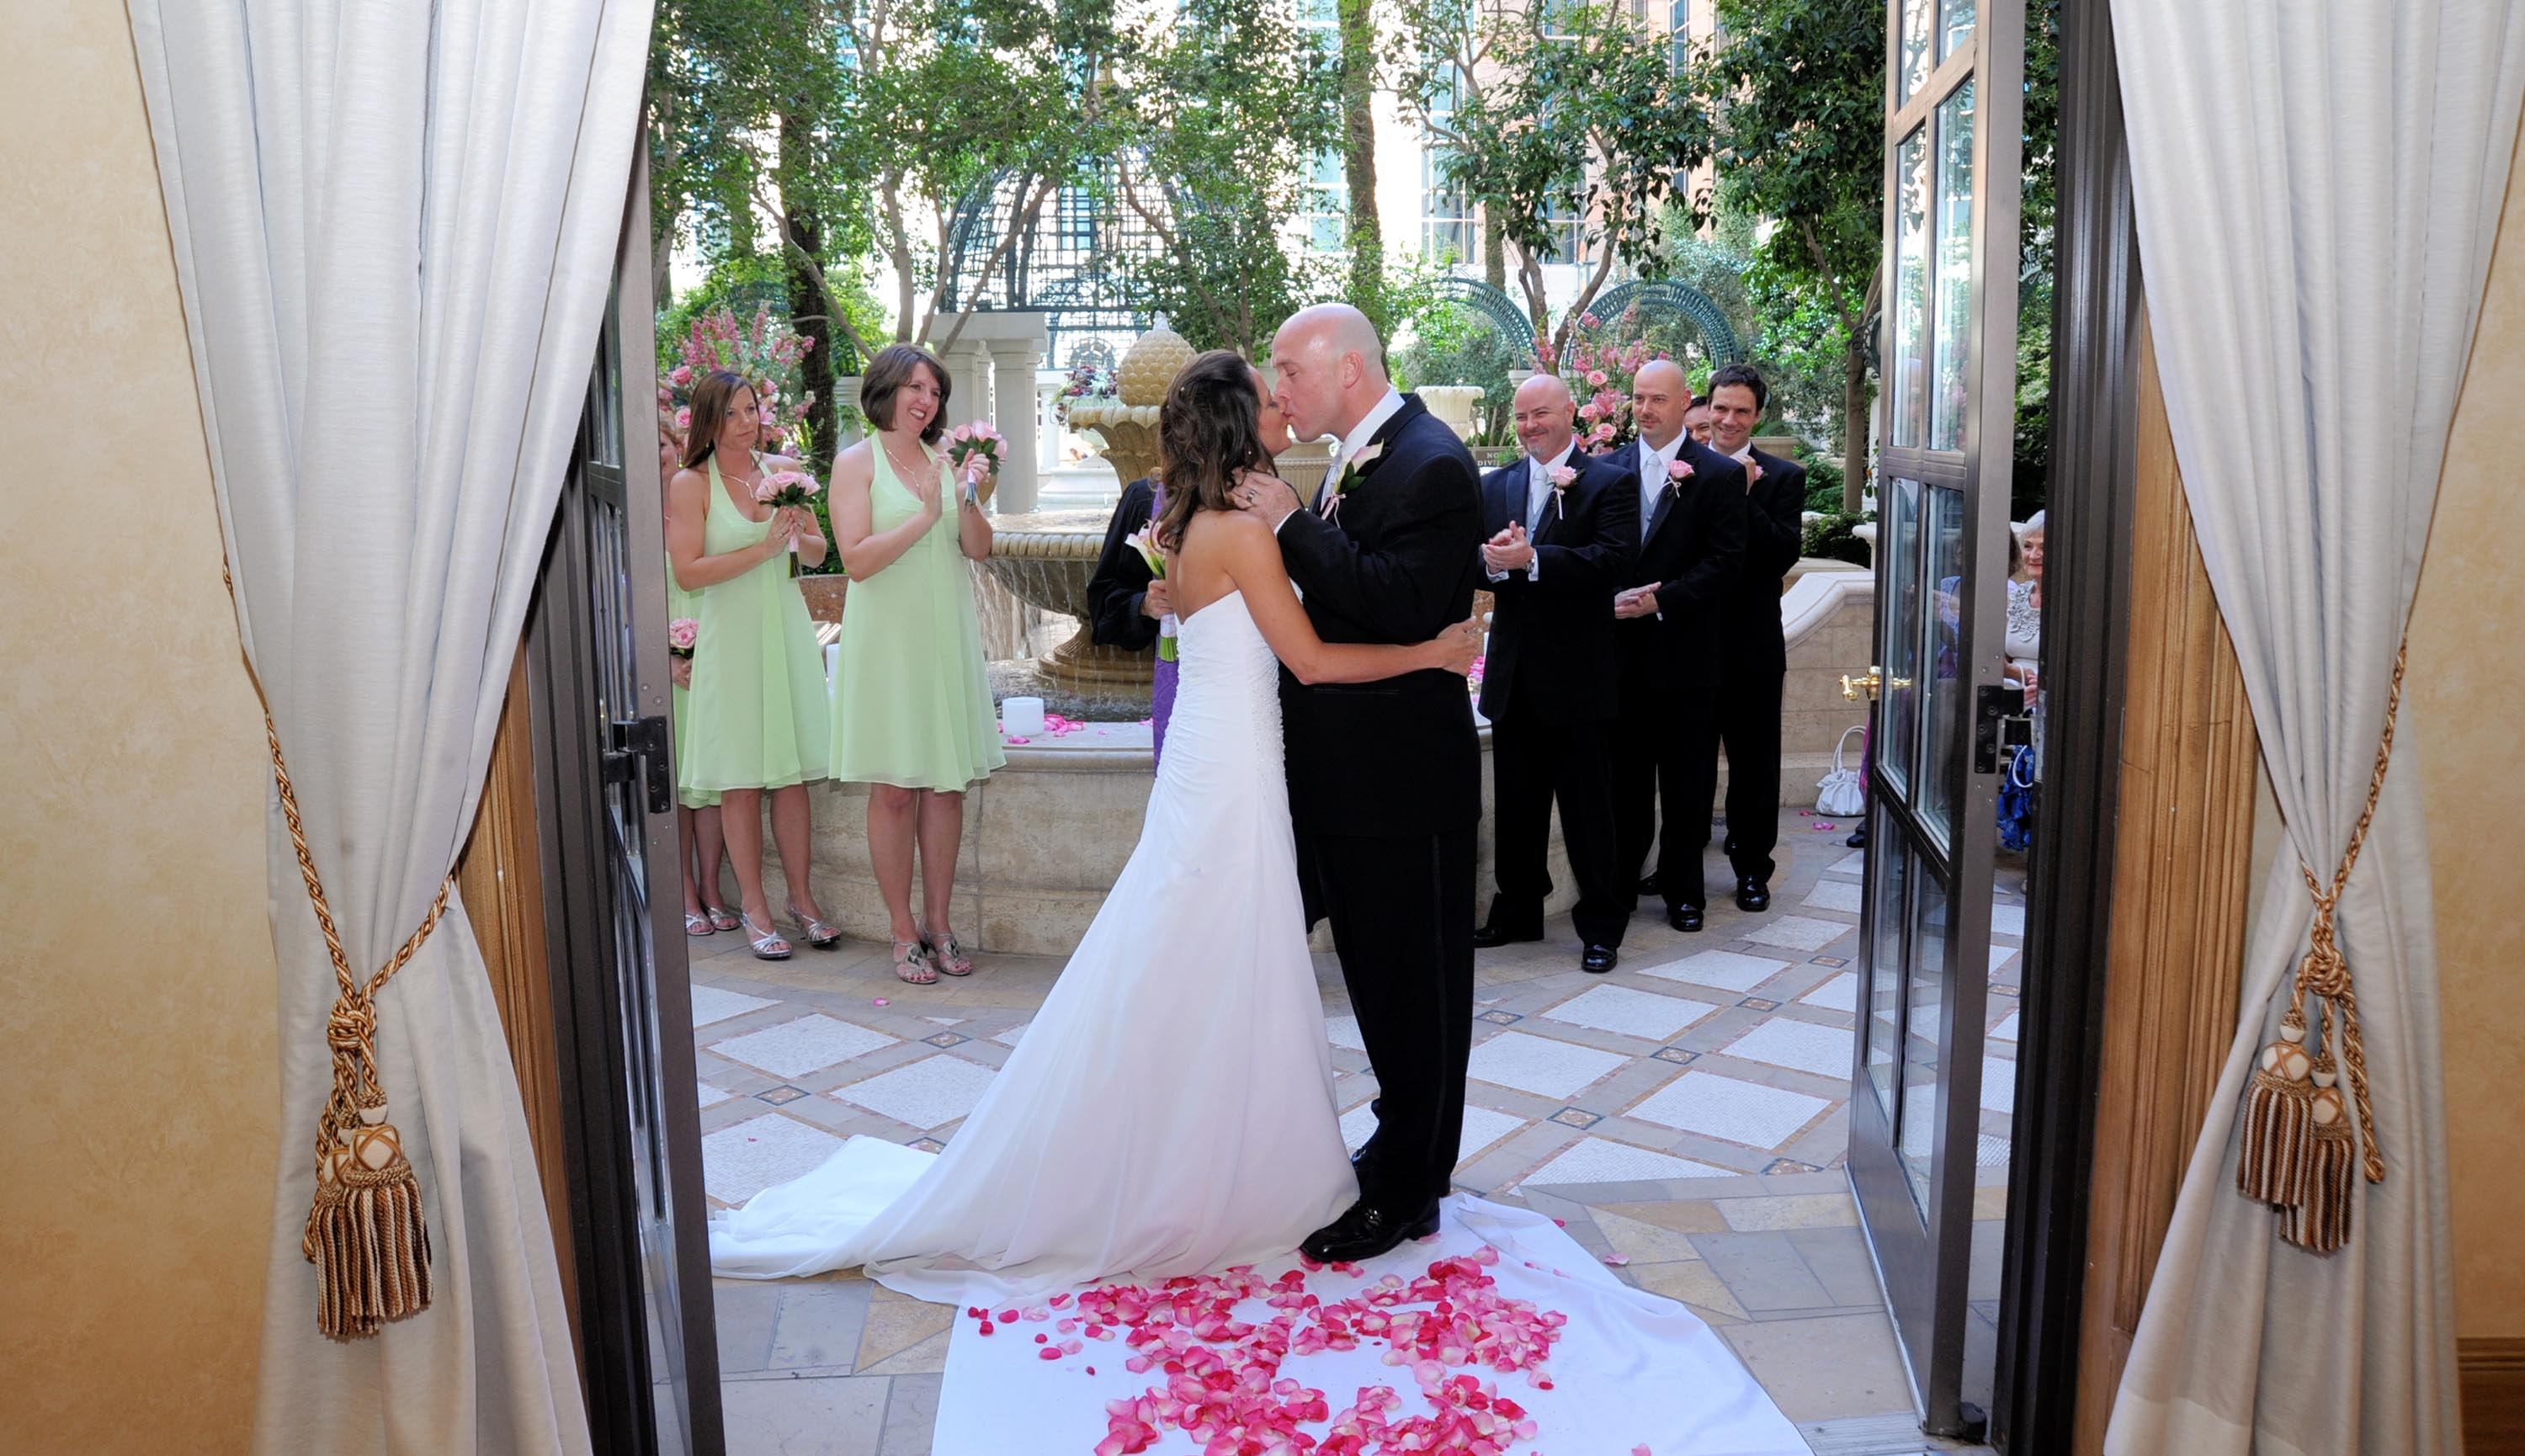 Want to have your wedding at venetian in las vegas nv for Wedding venues near las vegas nv